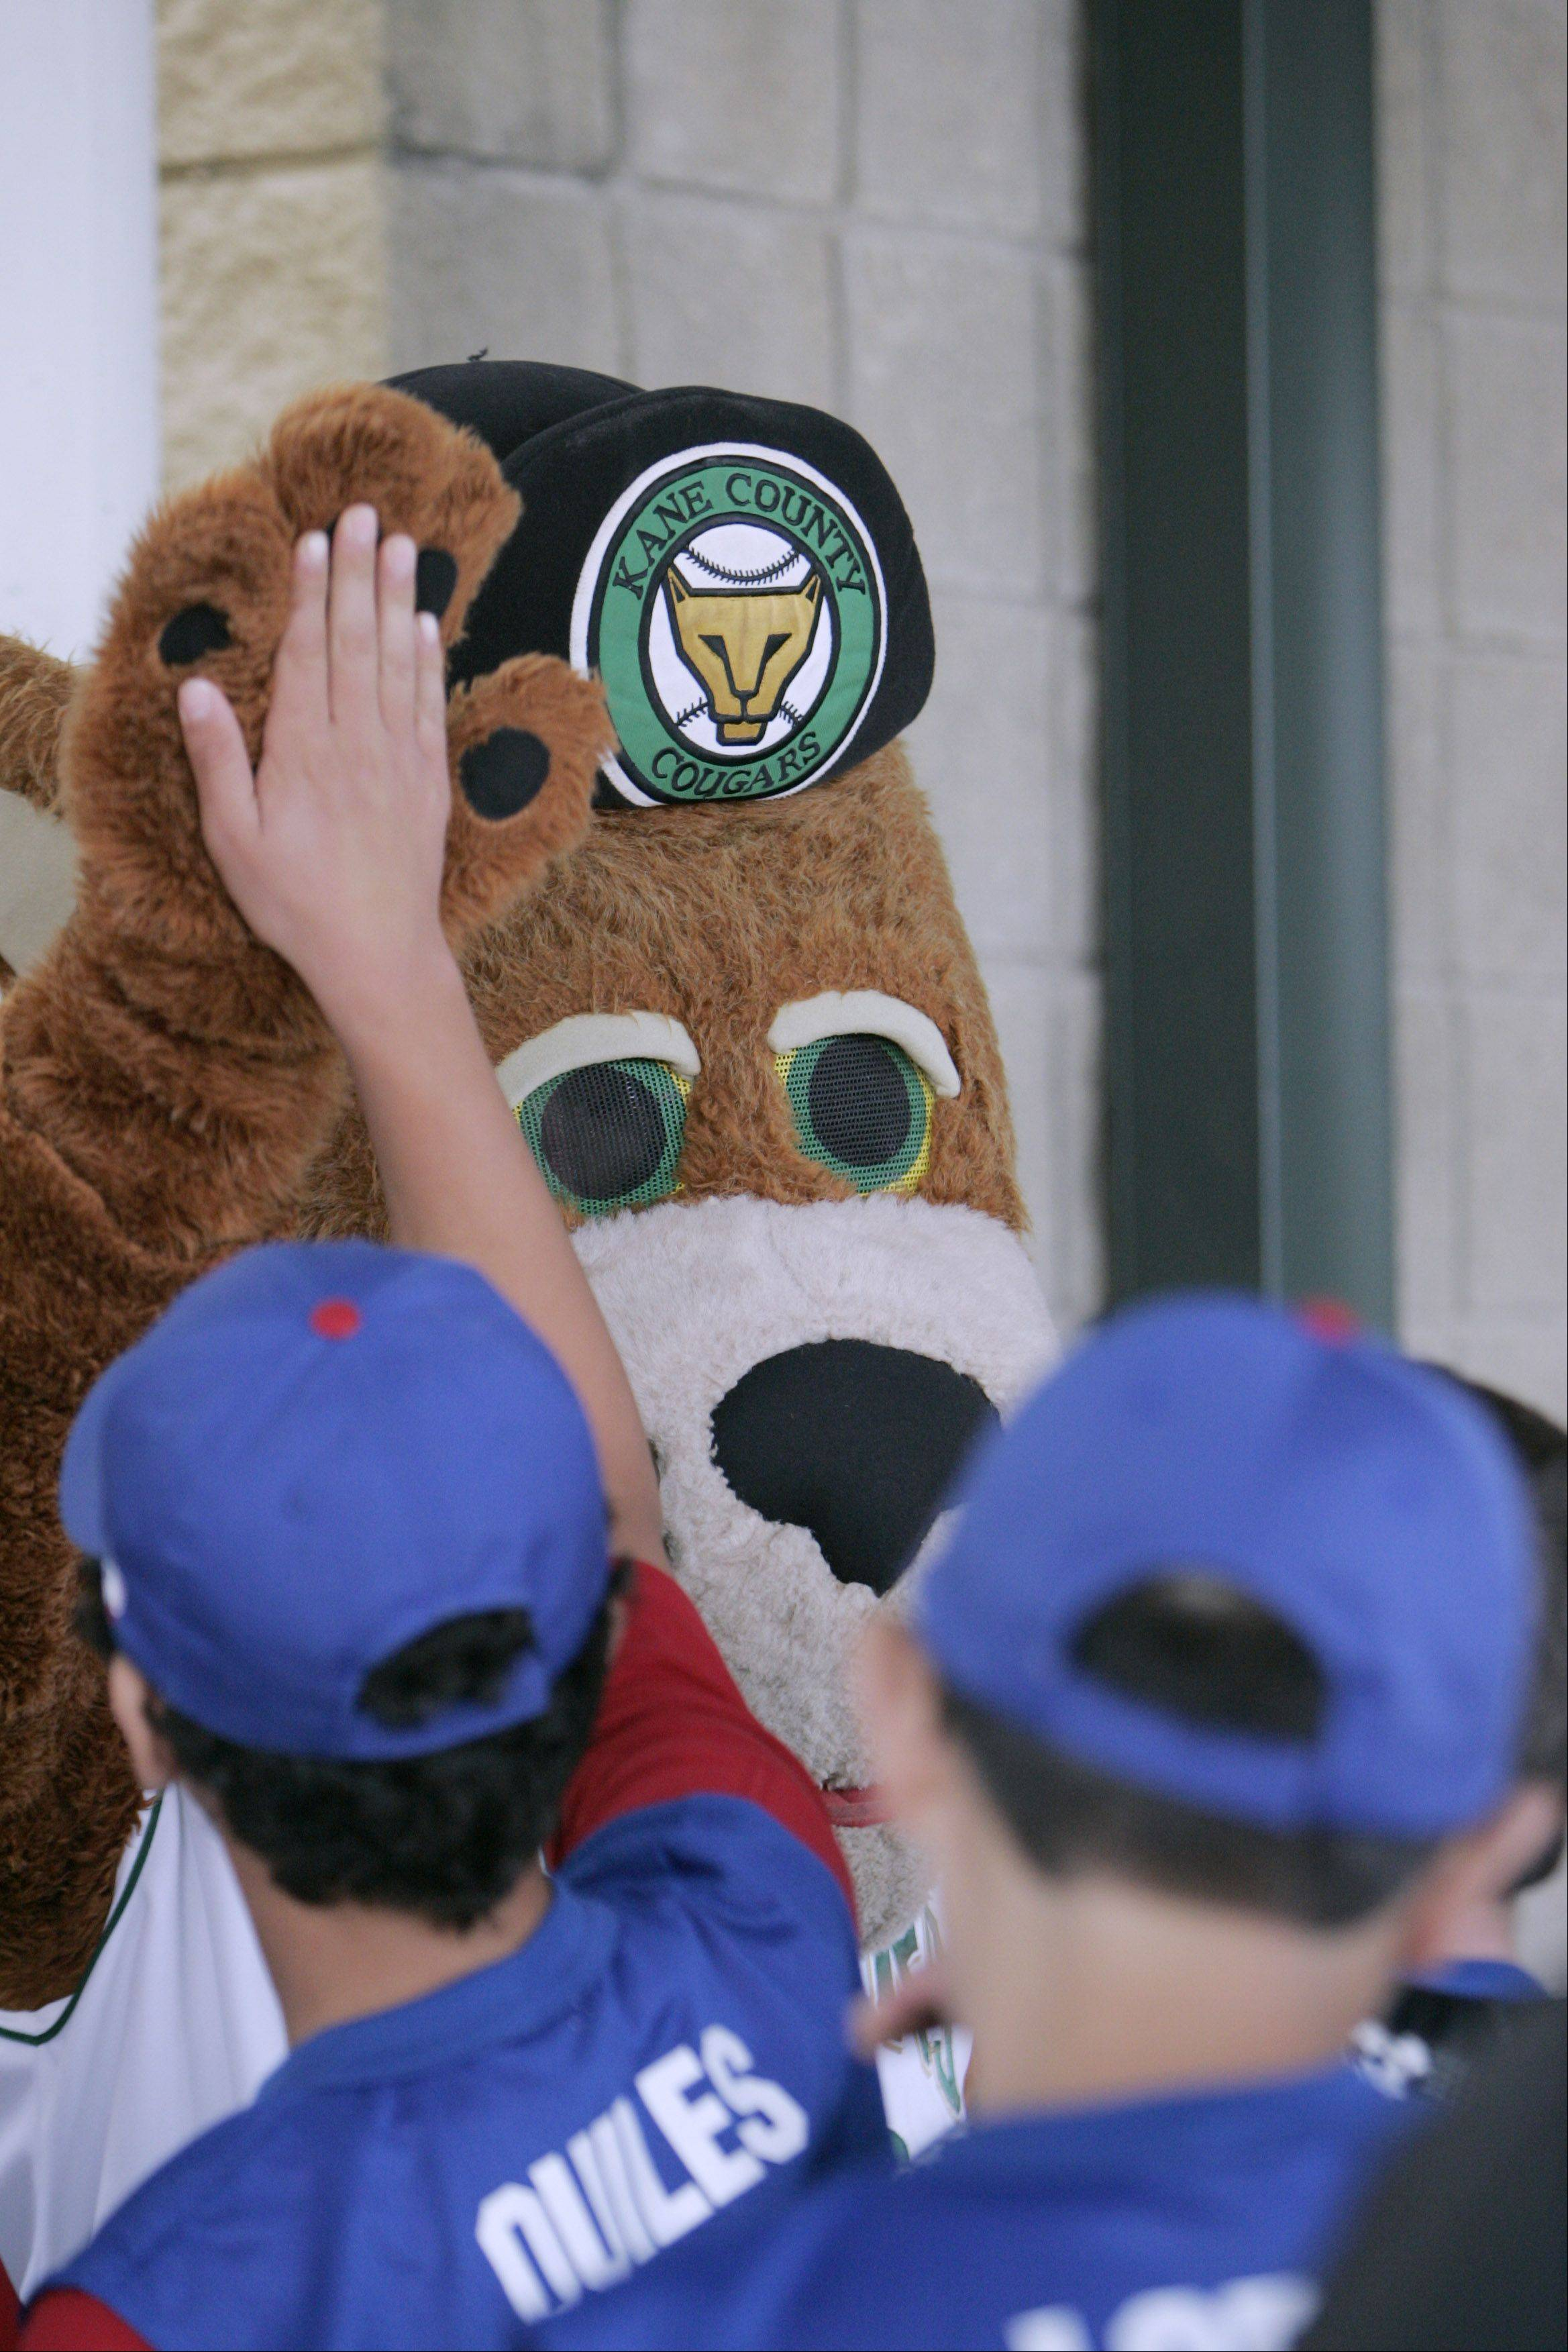 Fans are invited to visit Fifth Third Ballpark this Saturday, Dec. 15, when the Kane County Cougars hold a meet and greet with Ozzie T. Cougar and Santa Claus.